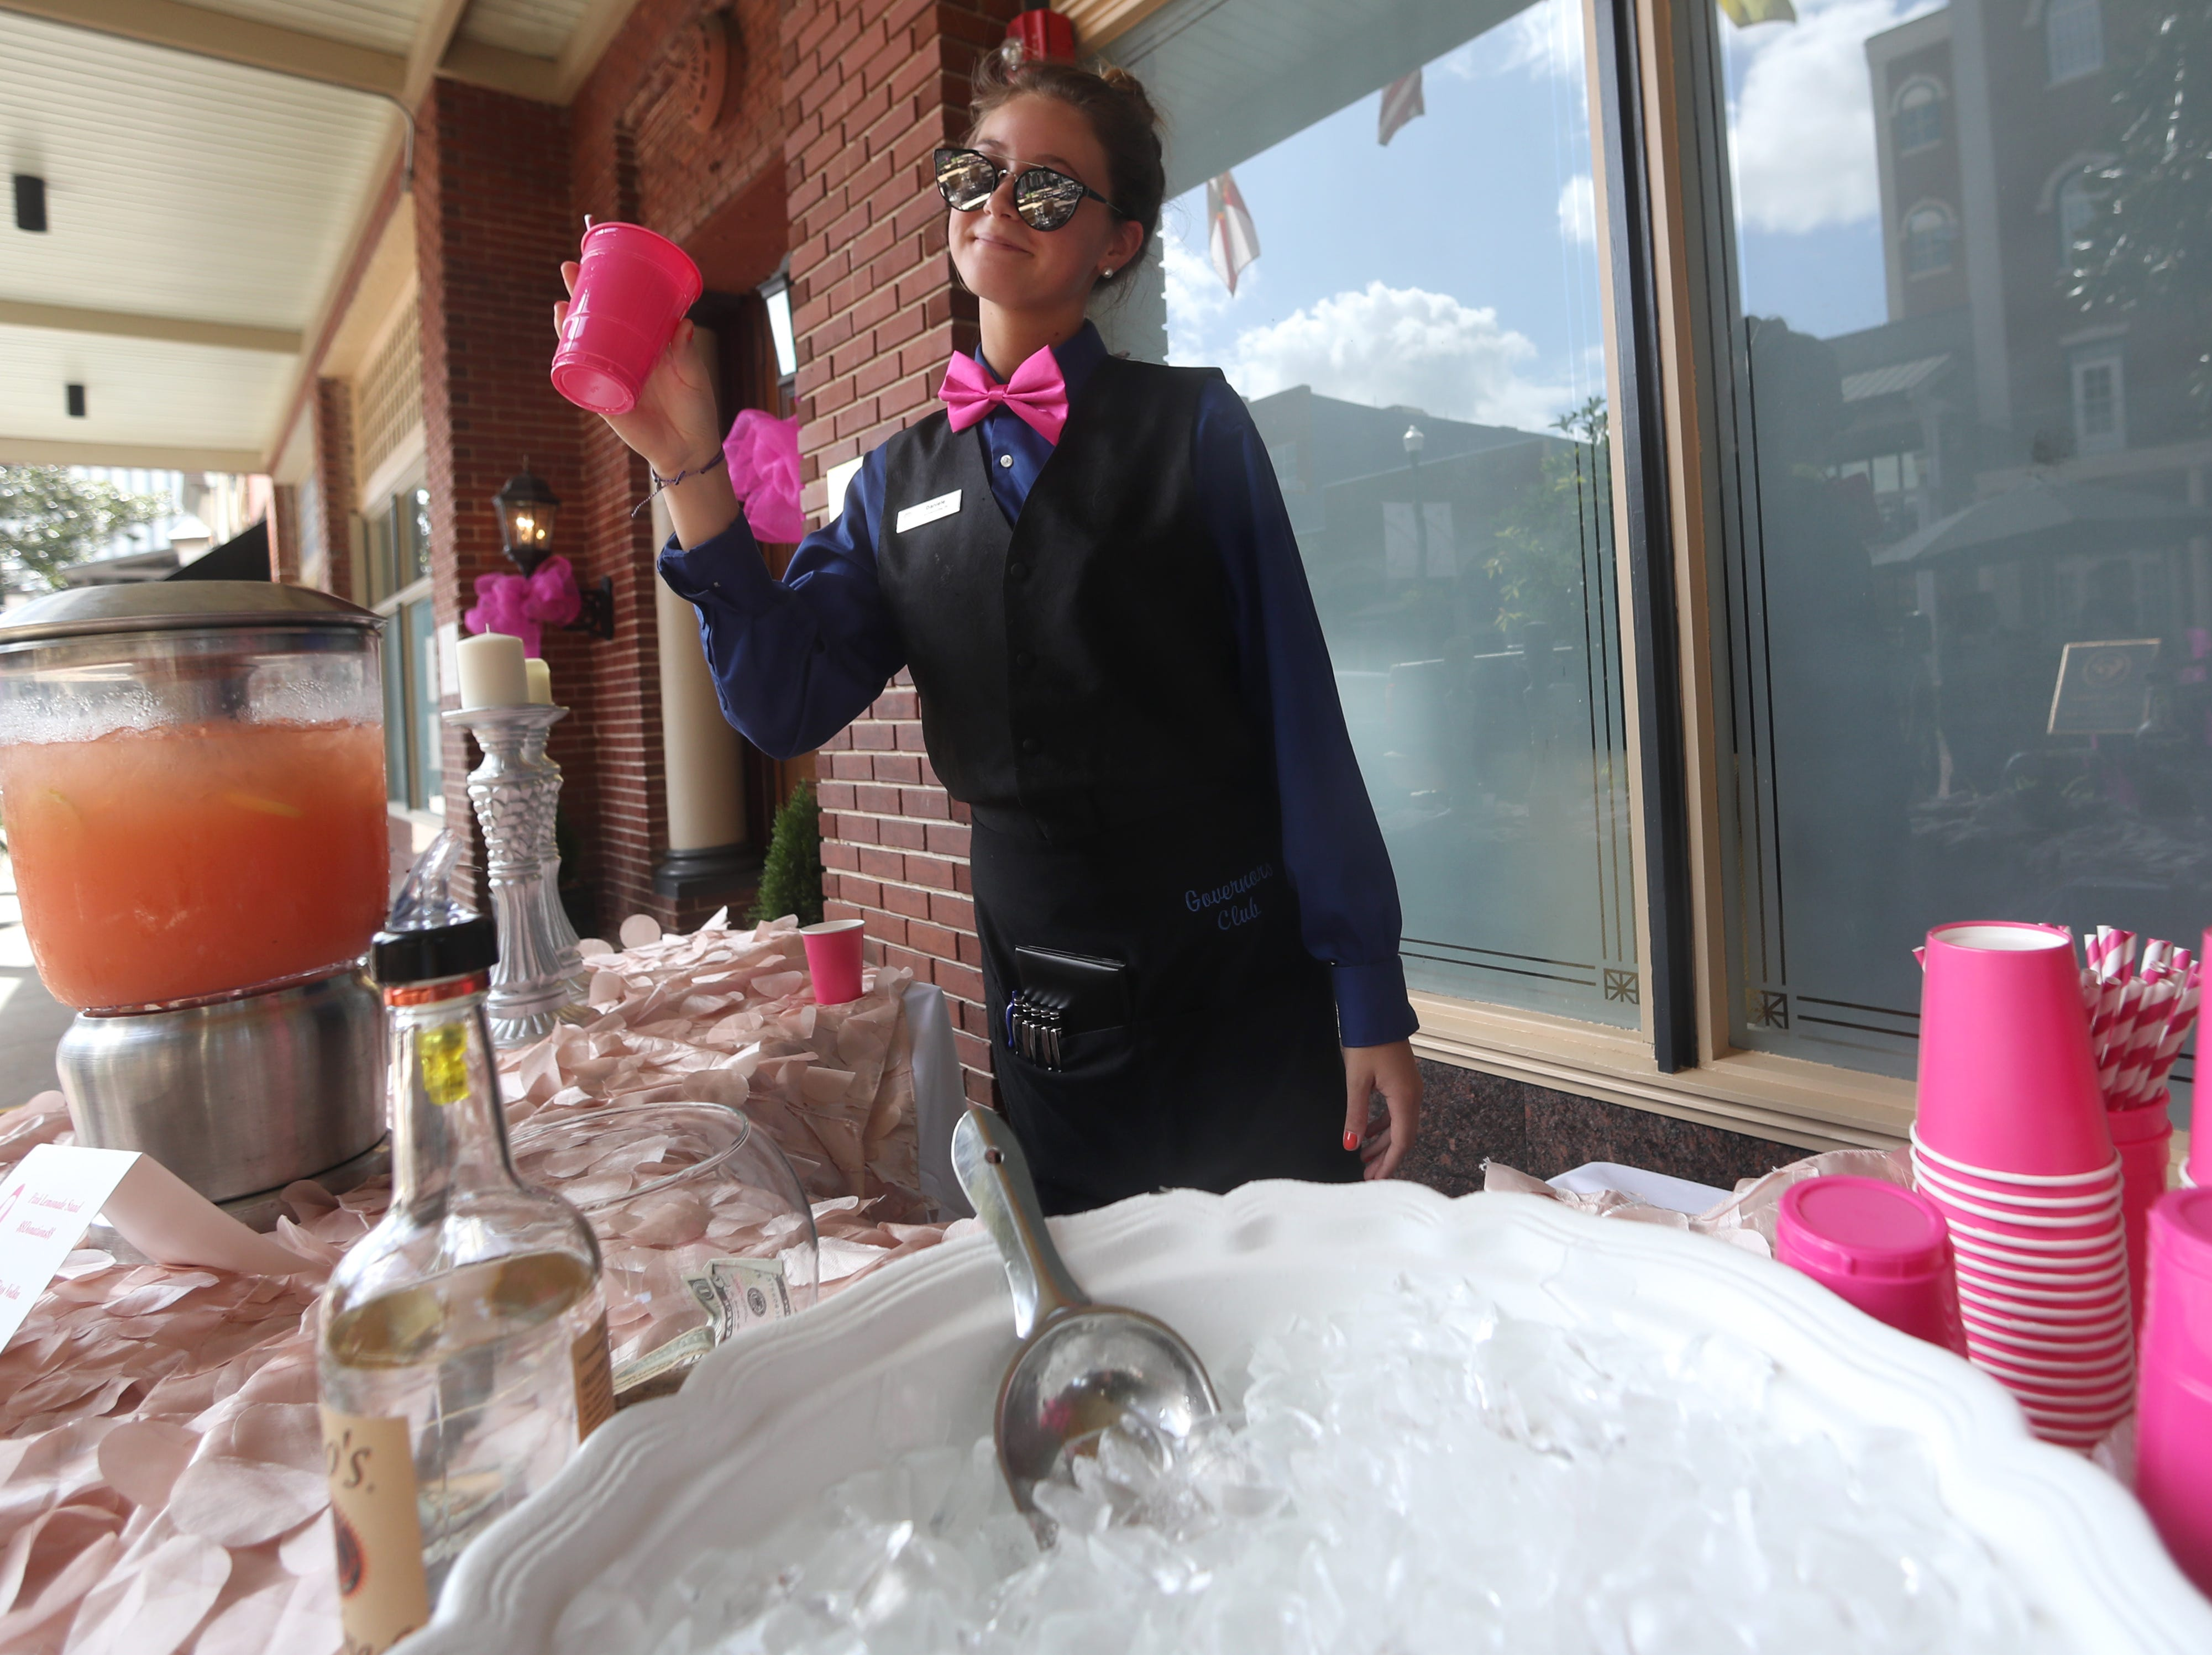 #GoPinkLemonade: Your 2018 guide to pink Tallahassee for breast cancer awareness month